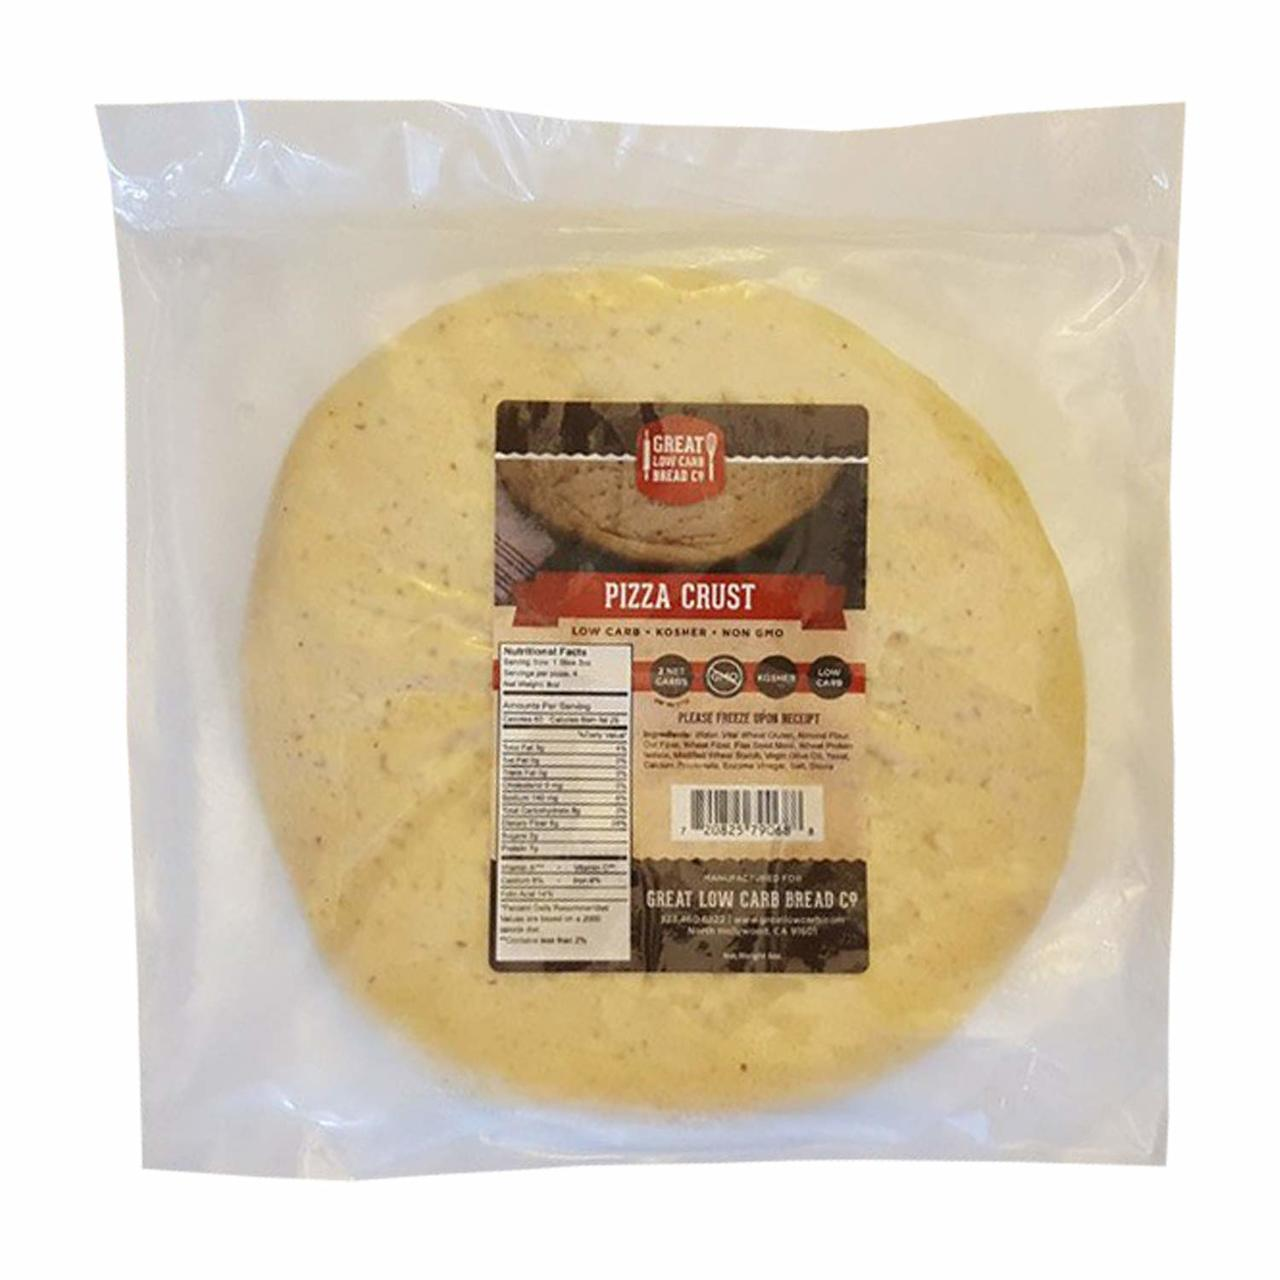 Great Low Carb Bread Company Pizza Crust